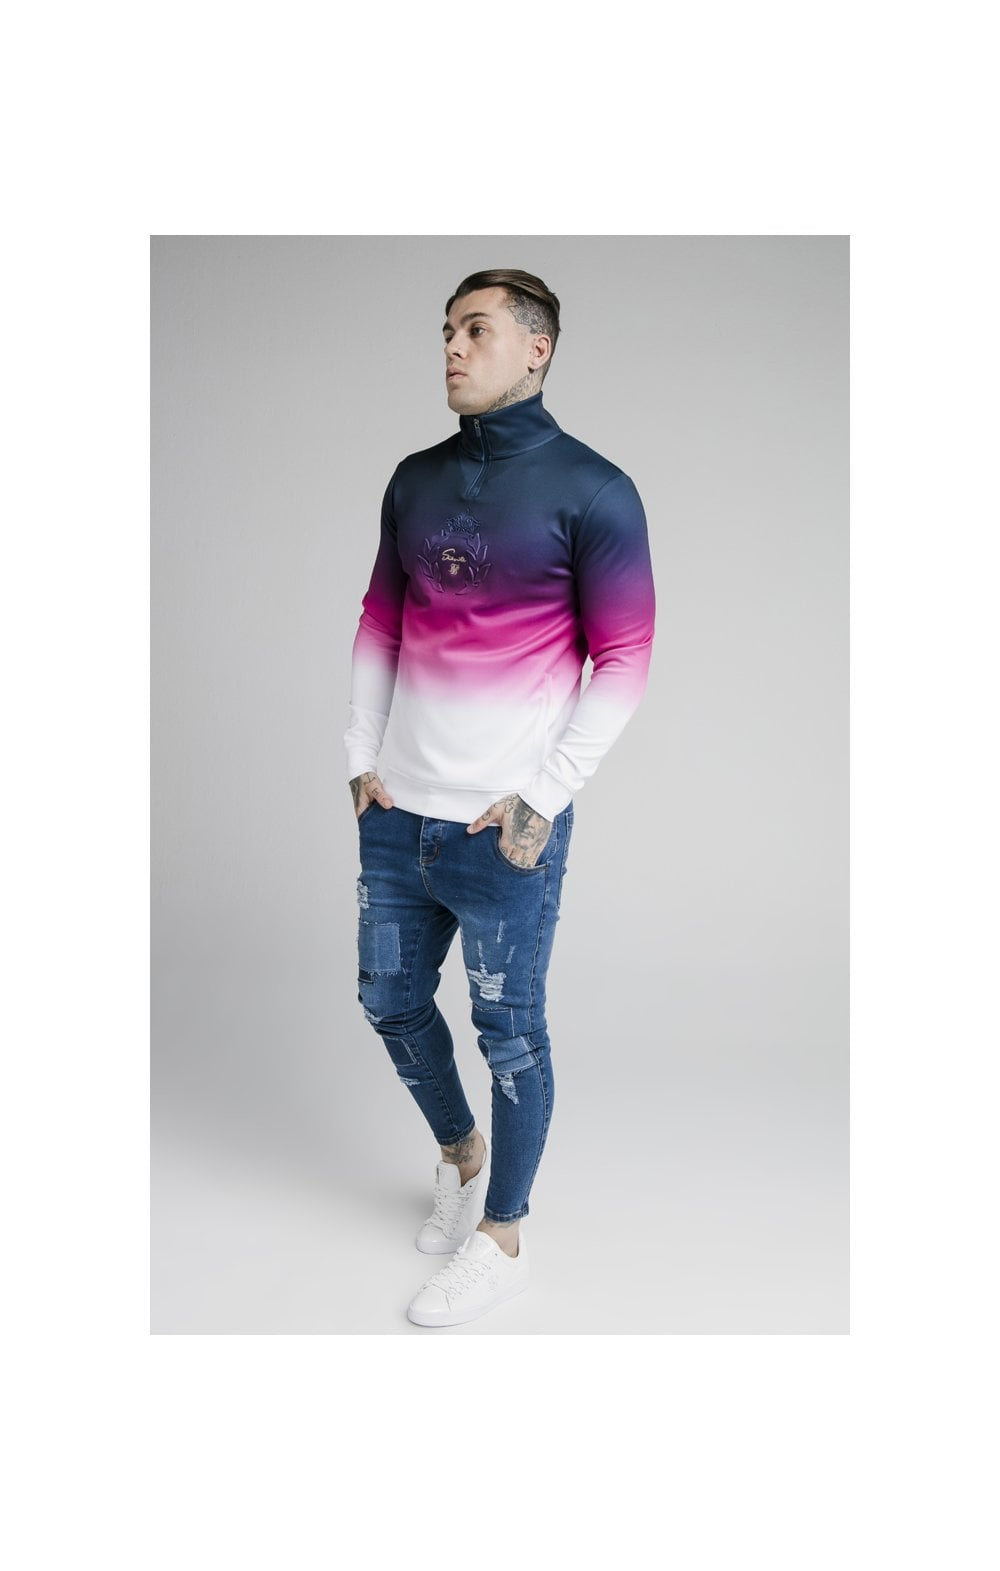 SikSilk Quarter Zip Overhead Track Top - Navy, Pink & White (3)